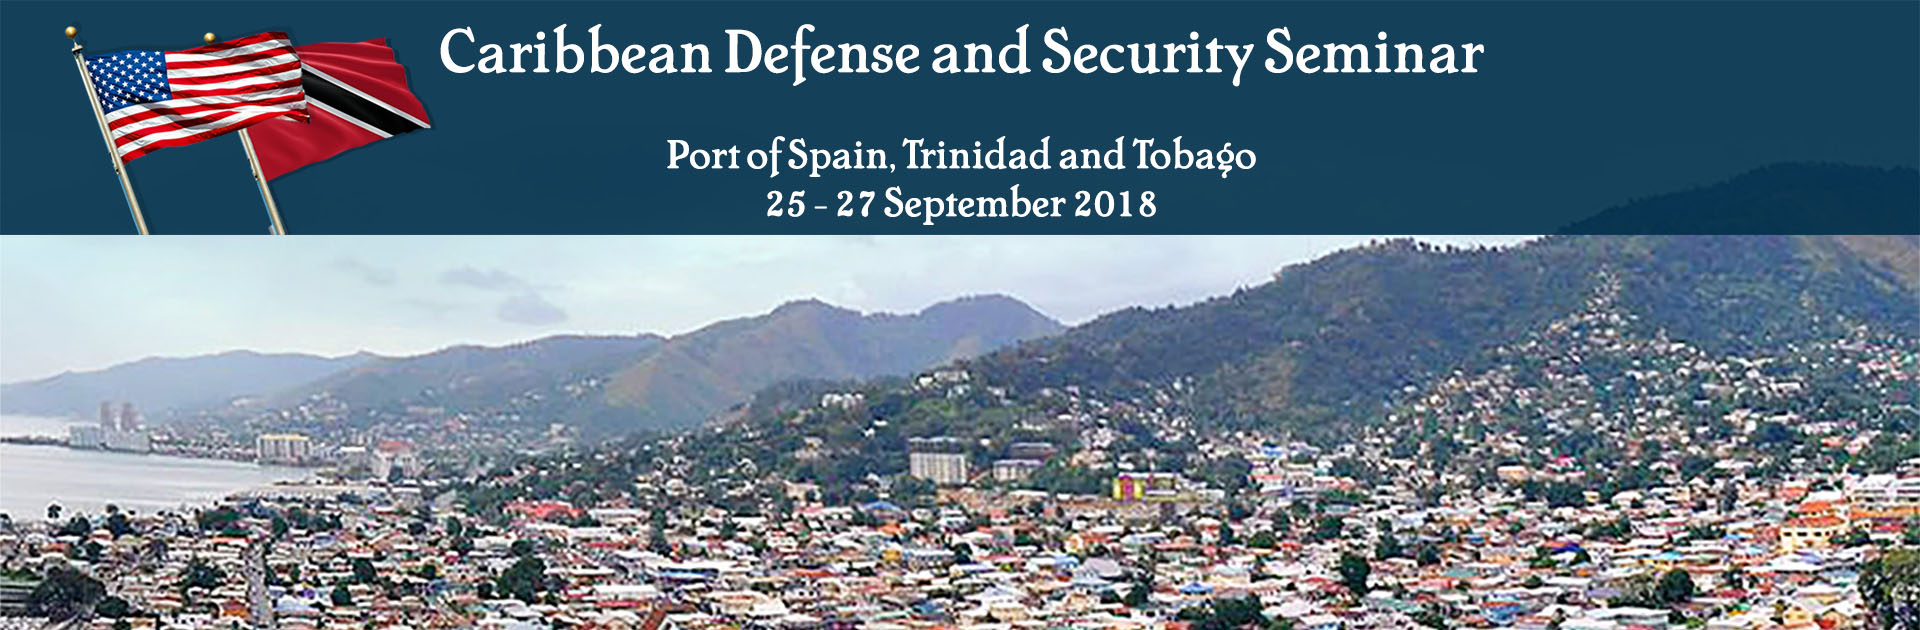 Caribbean Defense and Security Seminar